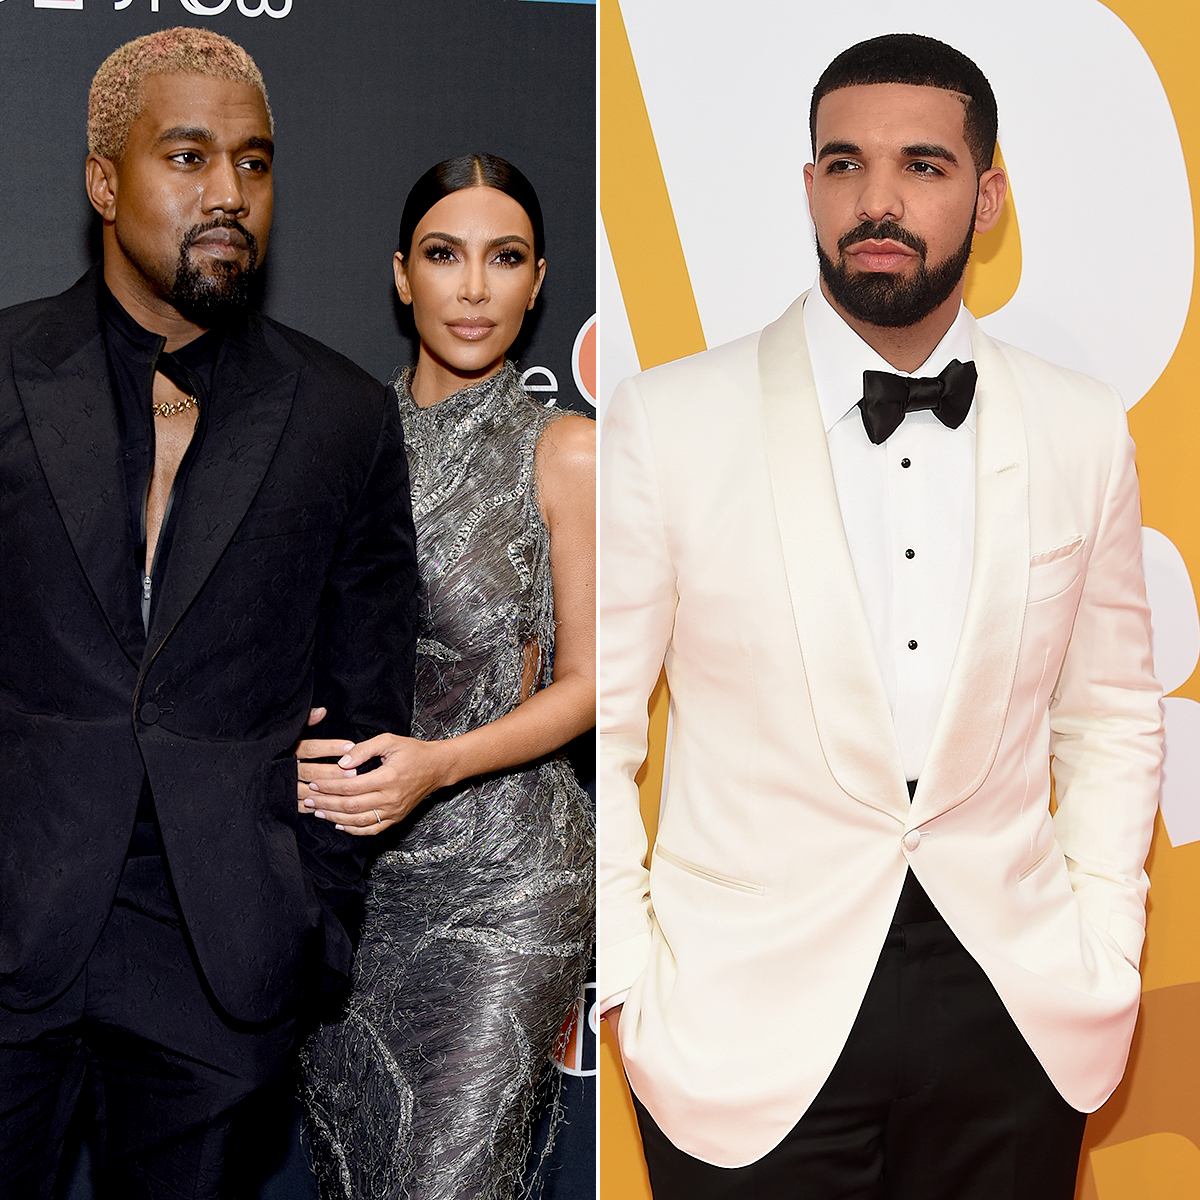 """kanye-west-kim-kardashian-drake - West was infuriated in December 2018 when he found out Drake was following his wife on Instagram. """"I never knew till this morning that Drake followed my wife on Instagram back in September. I had to bring this up because it's the most f—ked up thing of all and I just saw it this morning. Imagine having a problem with somebody and they follow your wife on Instagram,"""" he ranted in a series of since-deleted tweets."""